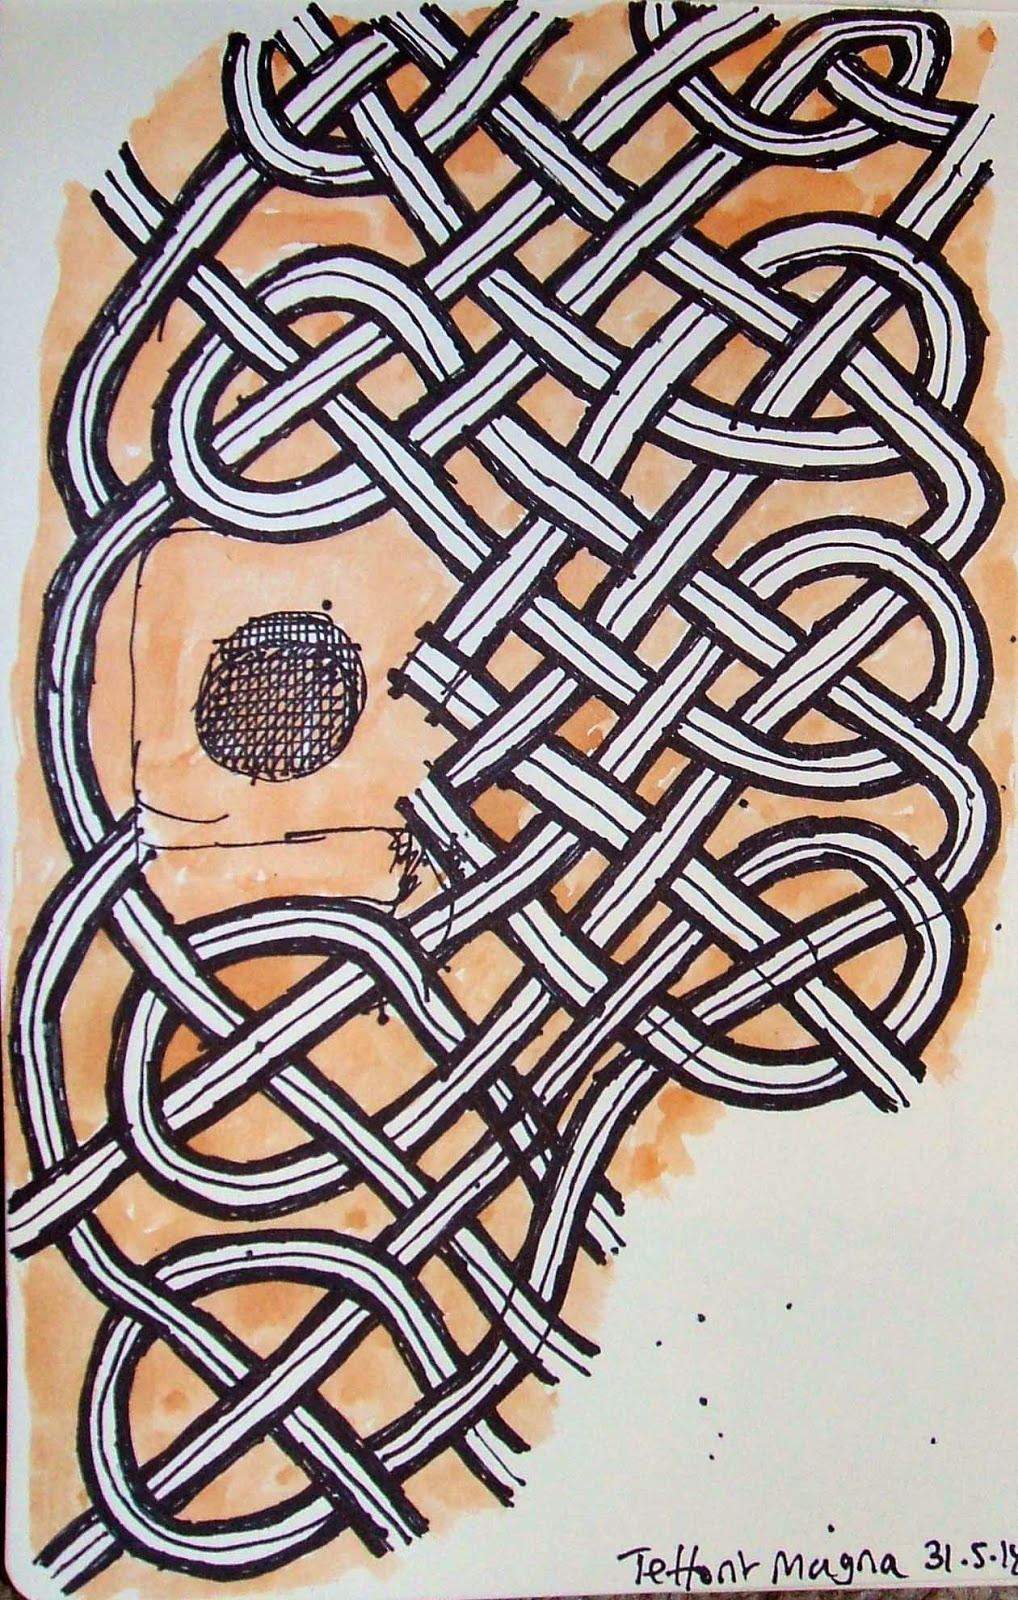 My pen and watercolour sketch of the larger knotwork carving.